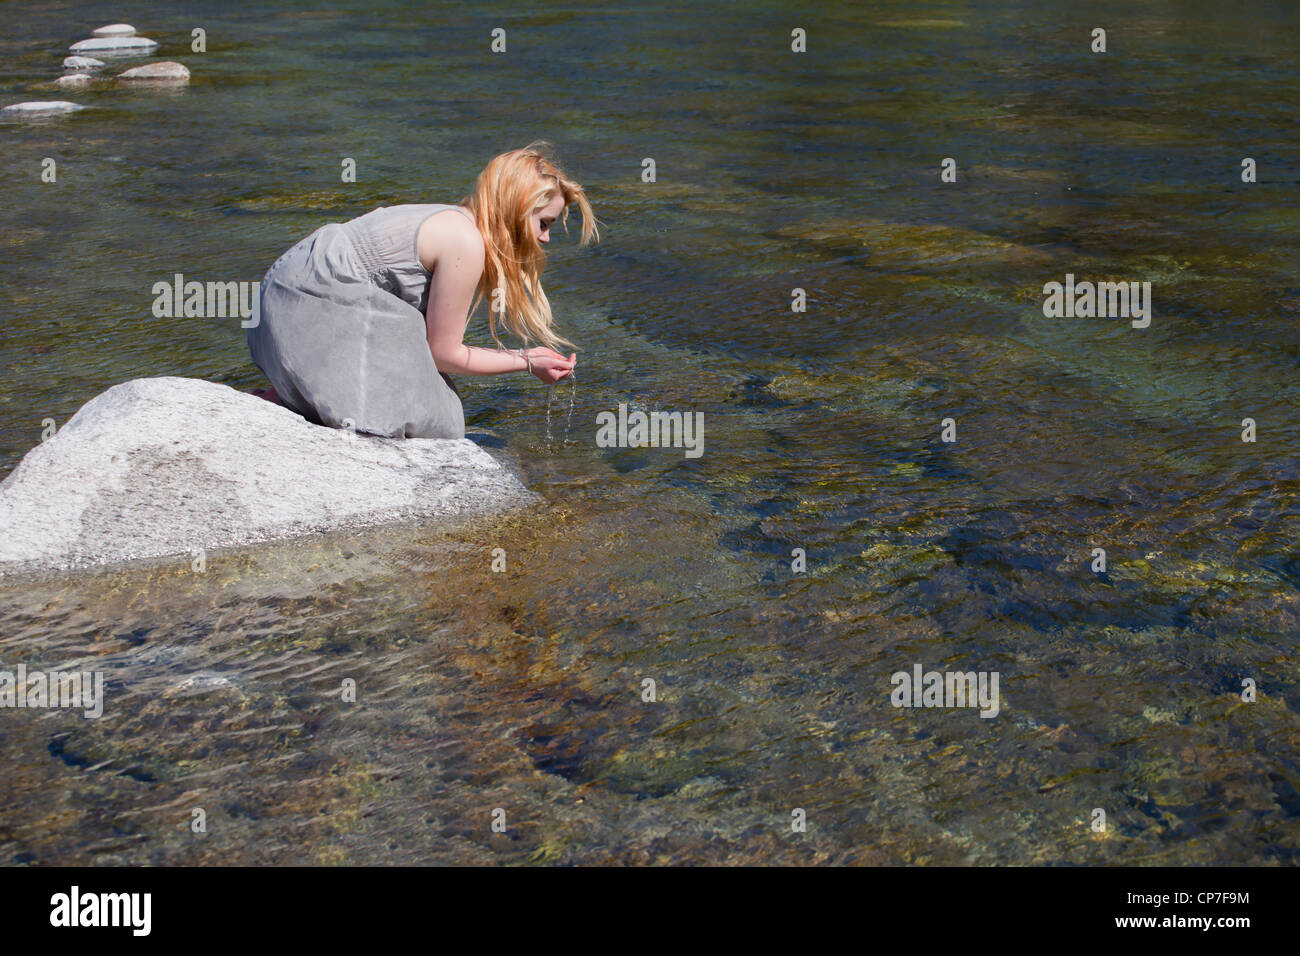 young woman sitting on a rock in a river and drinks water out of the hands - Stock Image